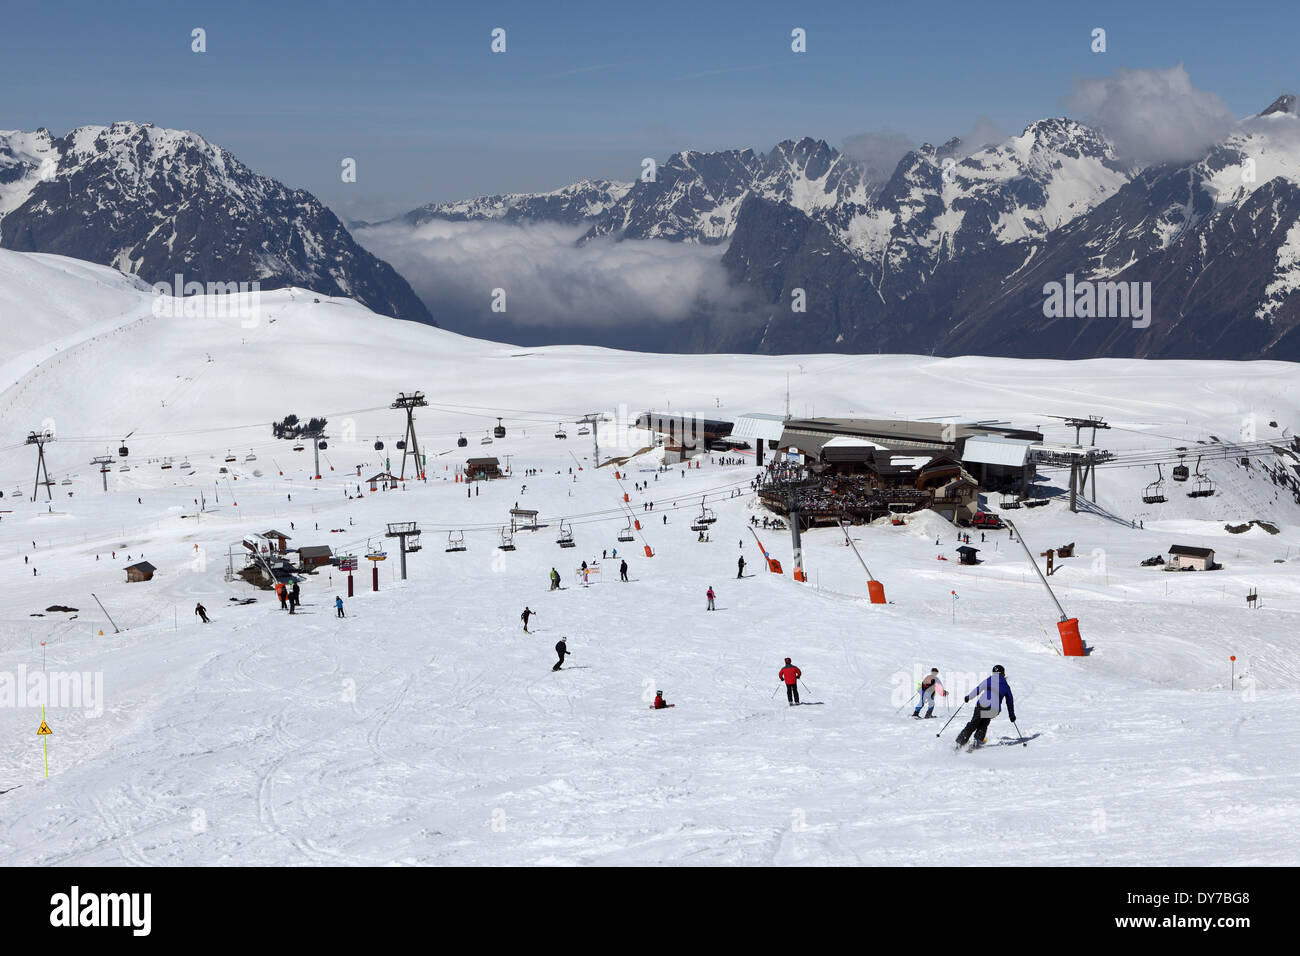 People skiing on a snow covered Alpine piste at Alpe d'Huez, France. - Stock Image